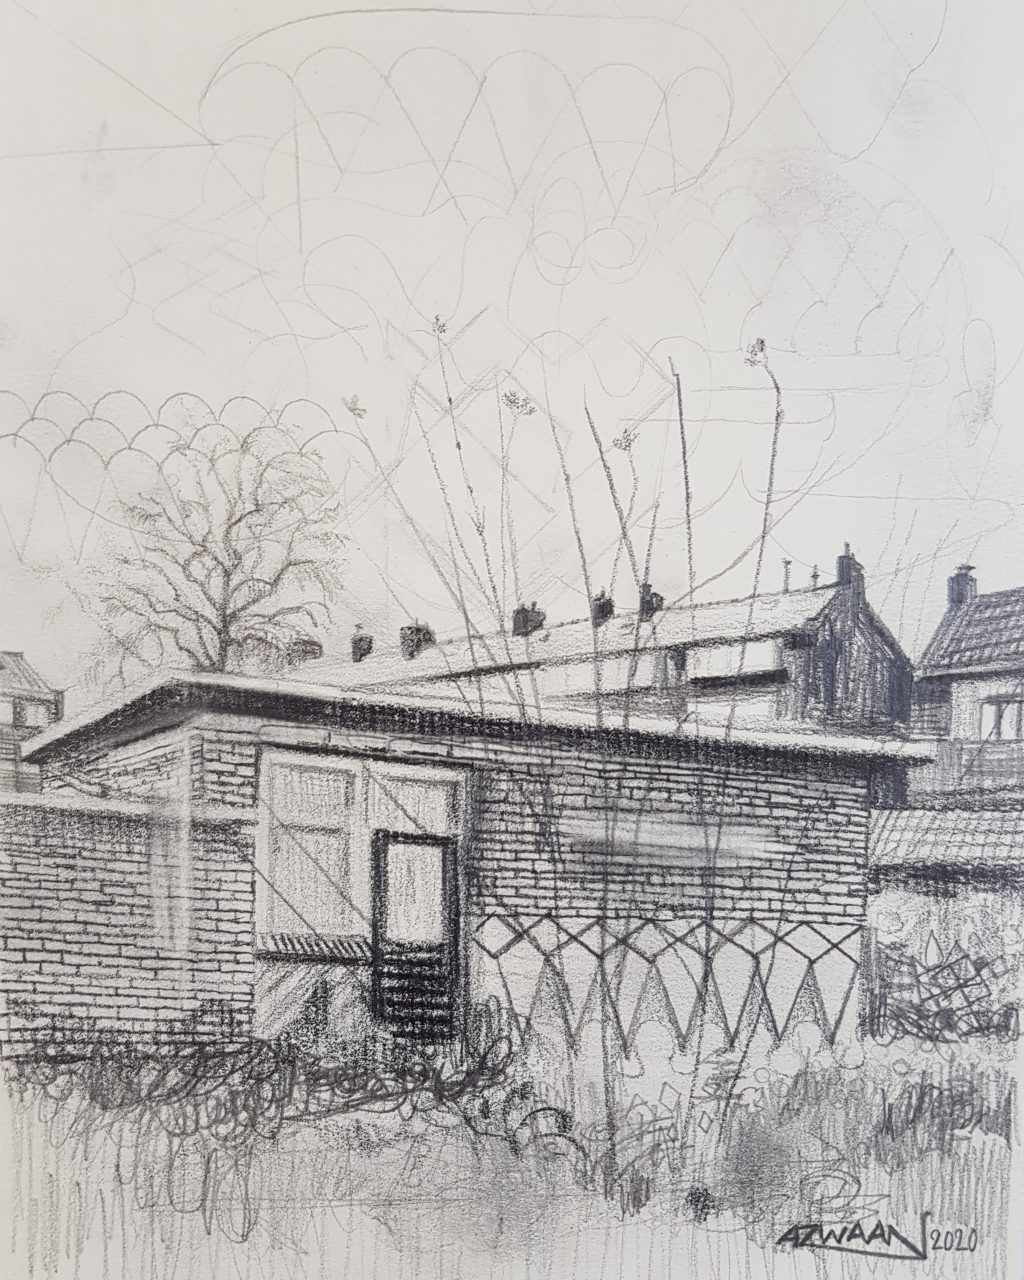 Courtyard, 2020. Pencil on paper, A5 format